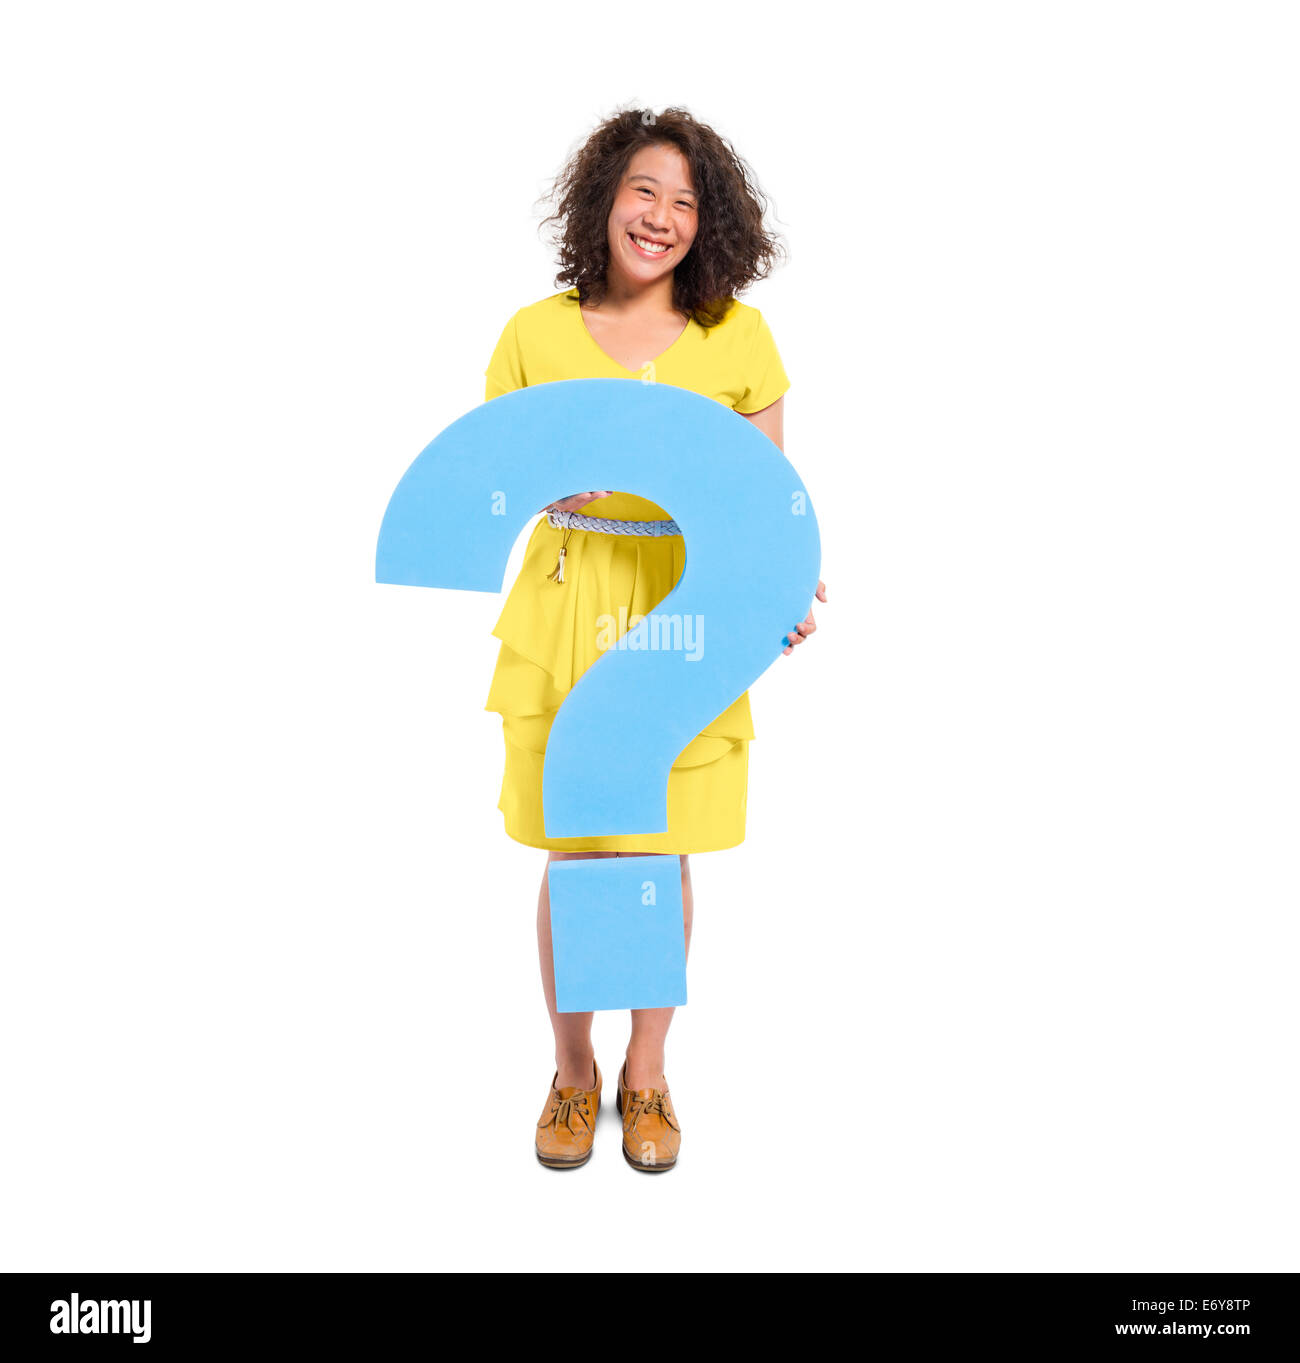 A Casual Woman Holding a Blue Question Mark - Stock Image